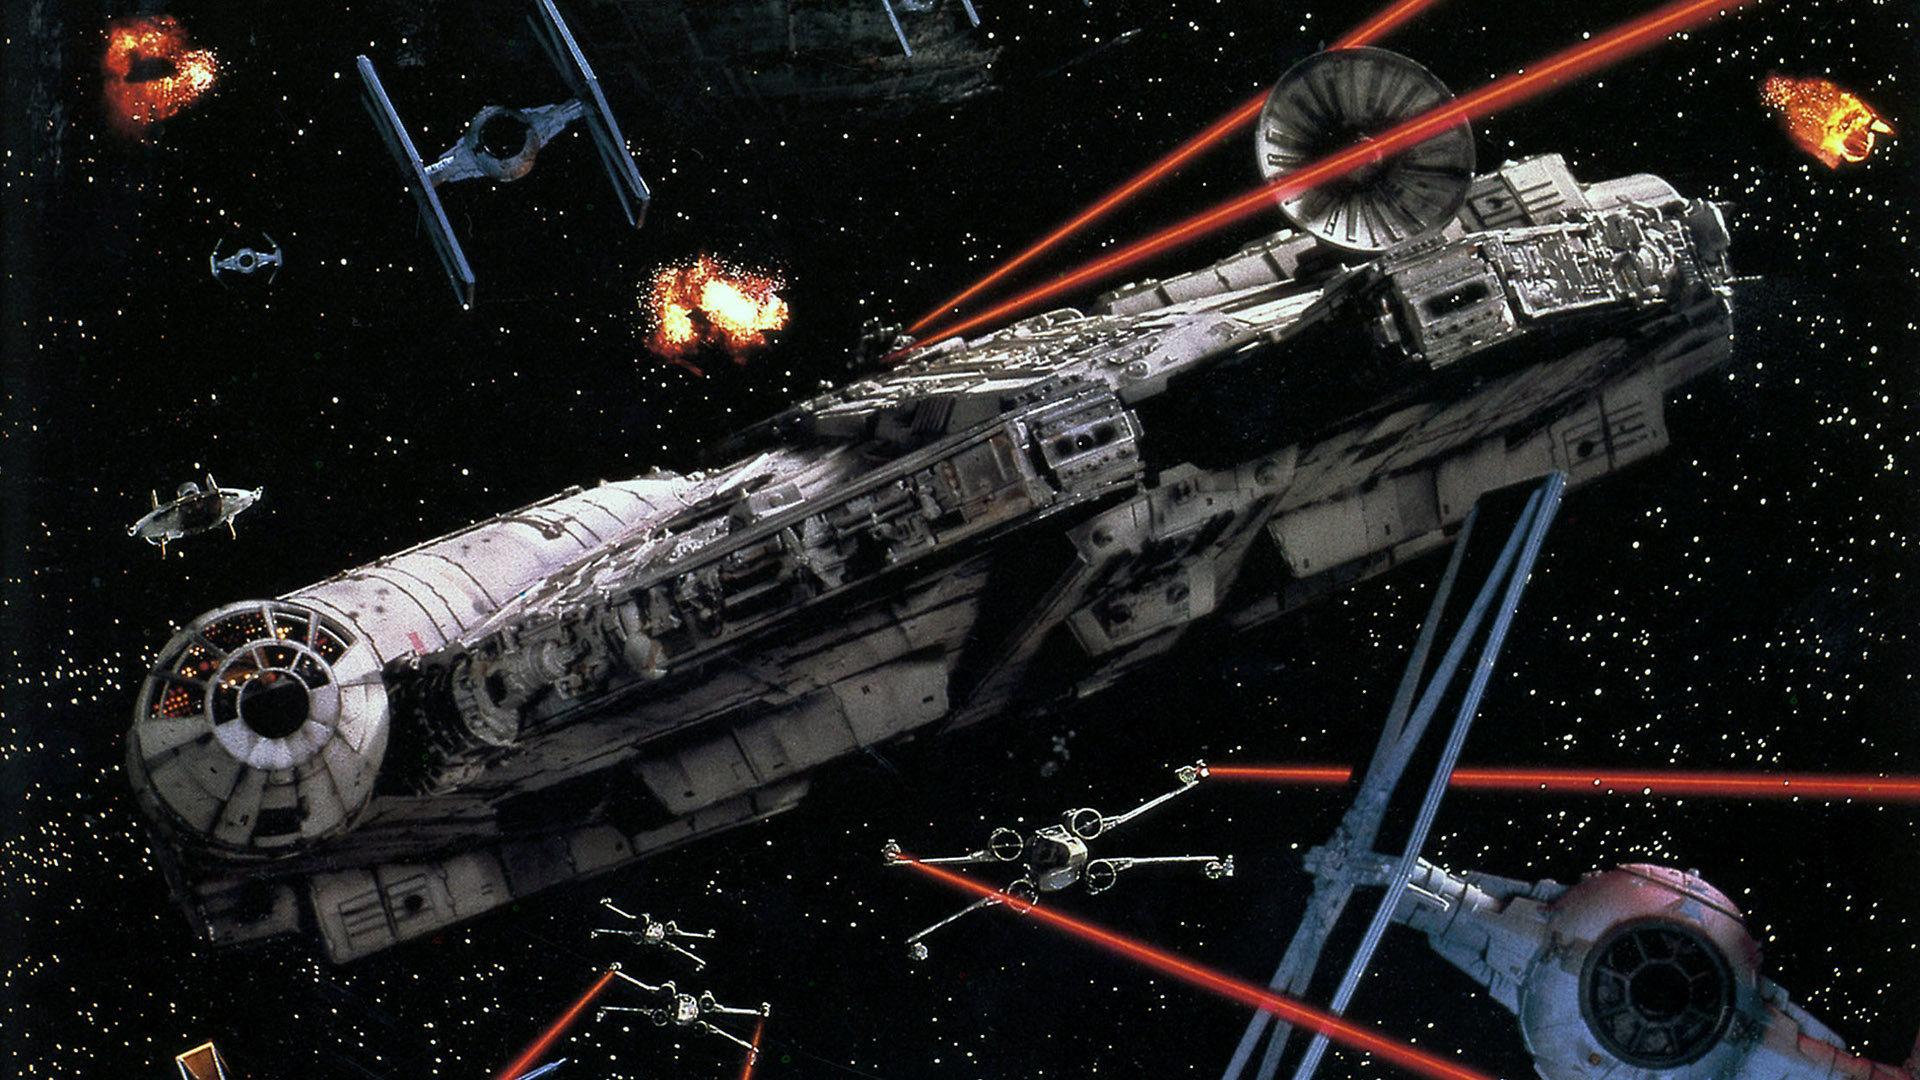 Star Wars Ships Wallpaper Widescreen hd background hd screensavers hd 1920x1080